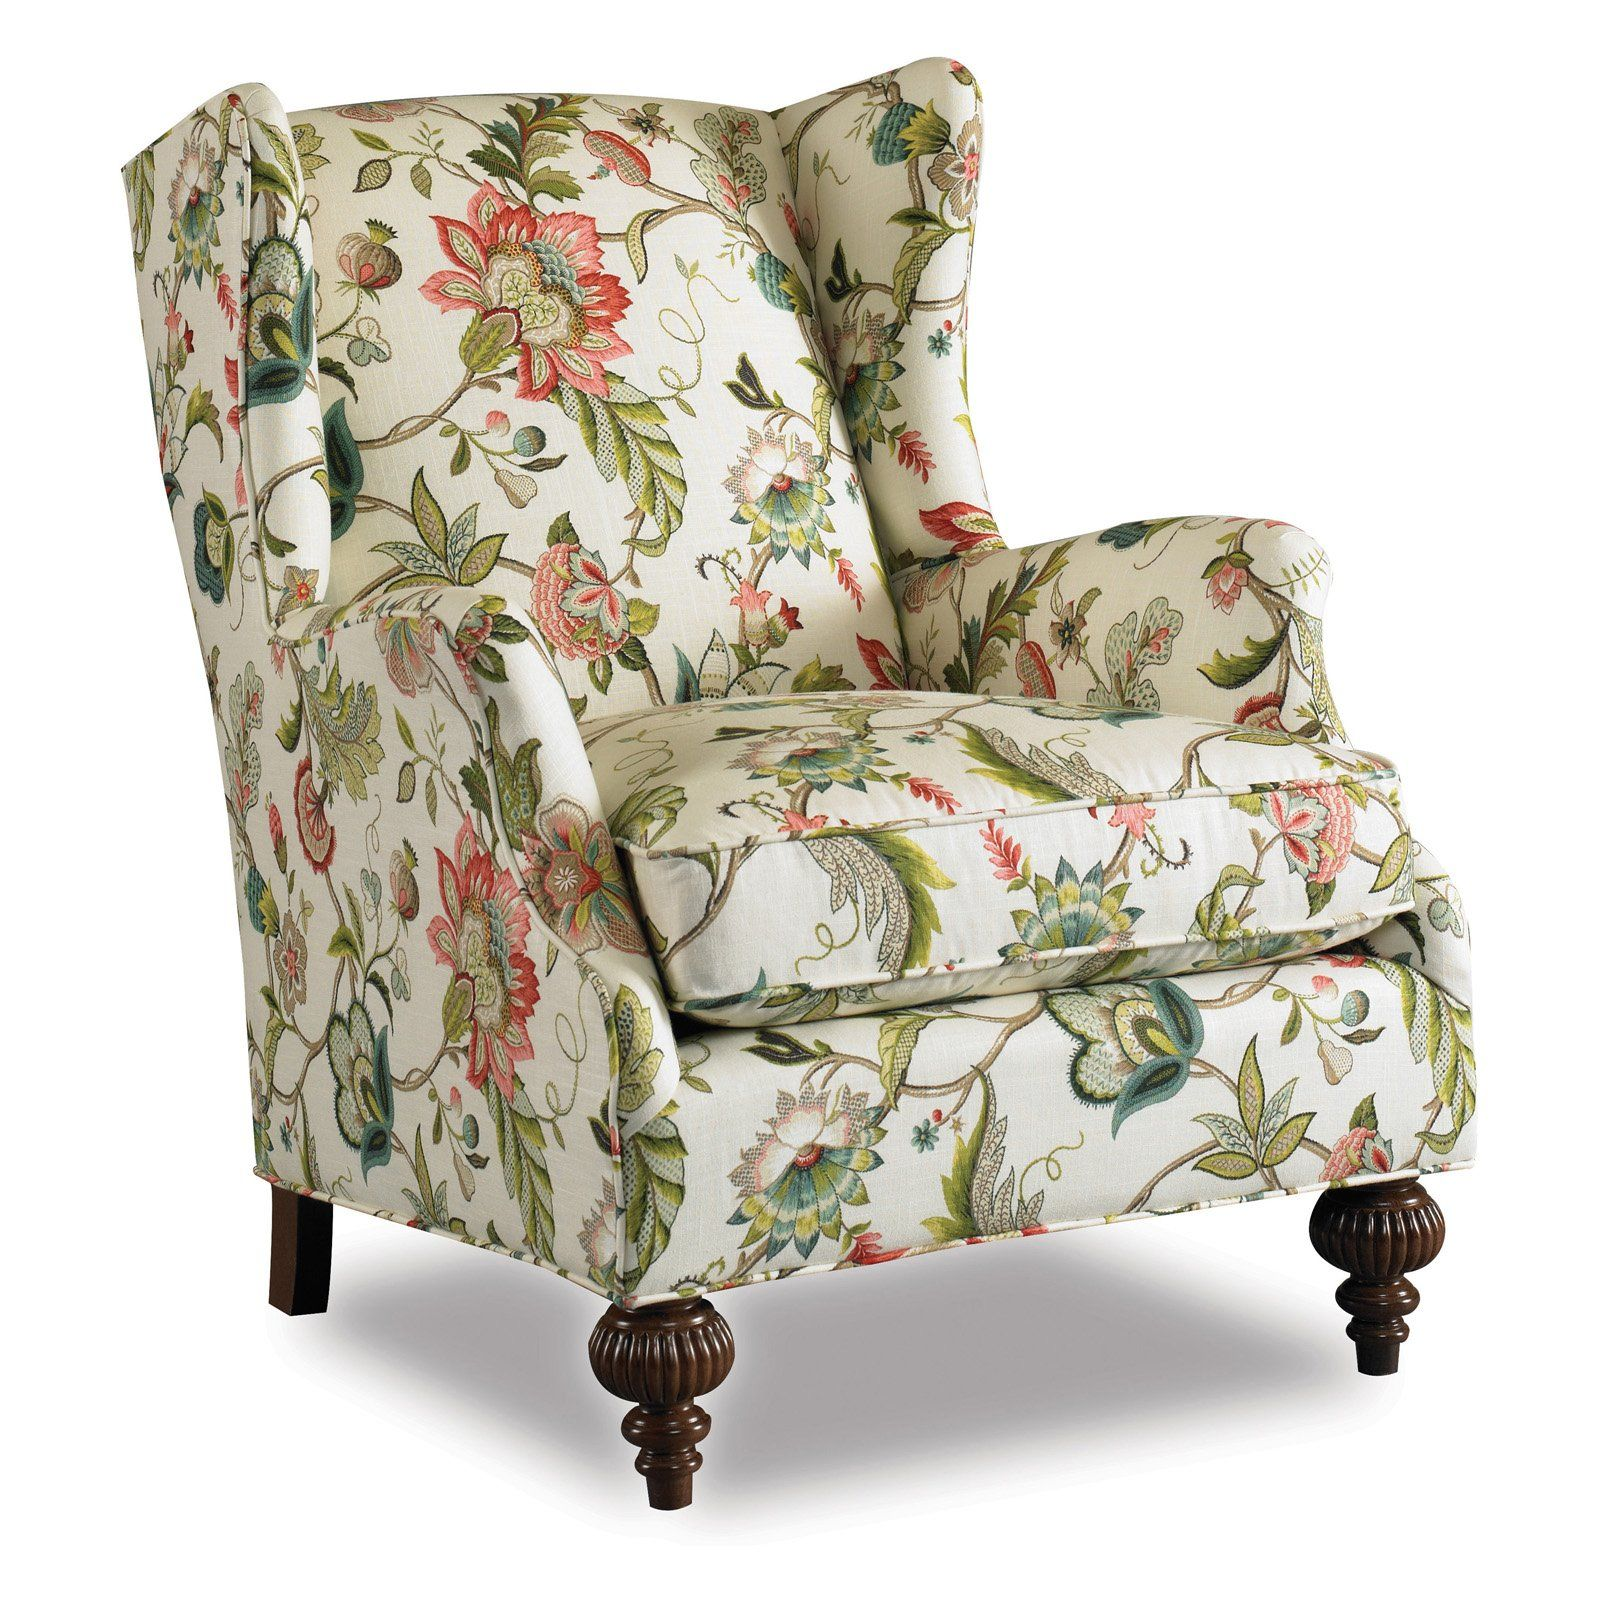 Floral Wingback Chair Botanical Print Upholstery Fabric Chair Abington